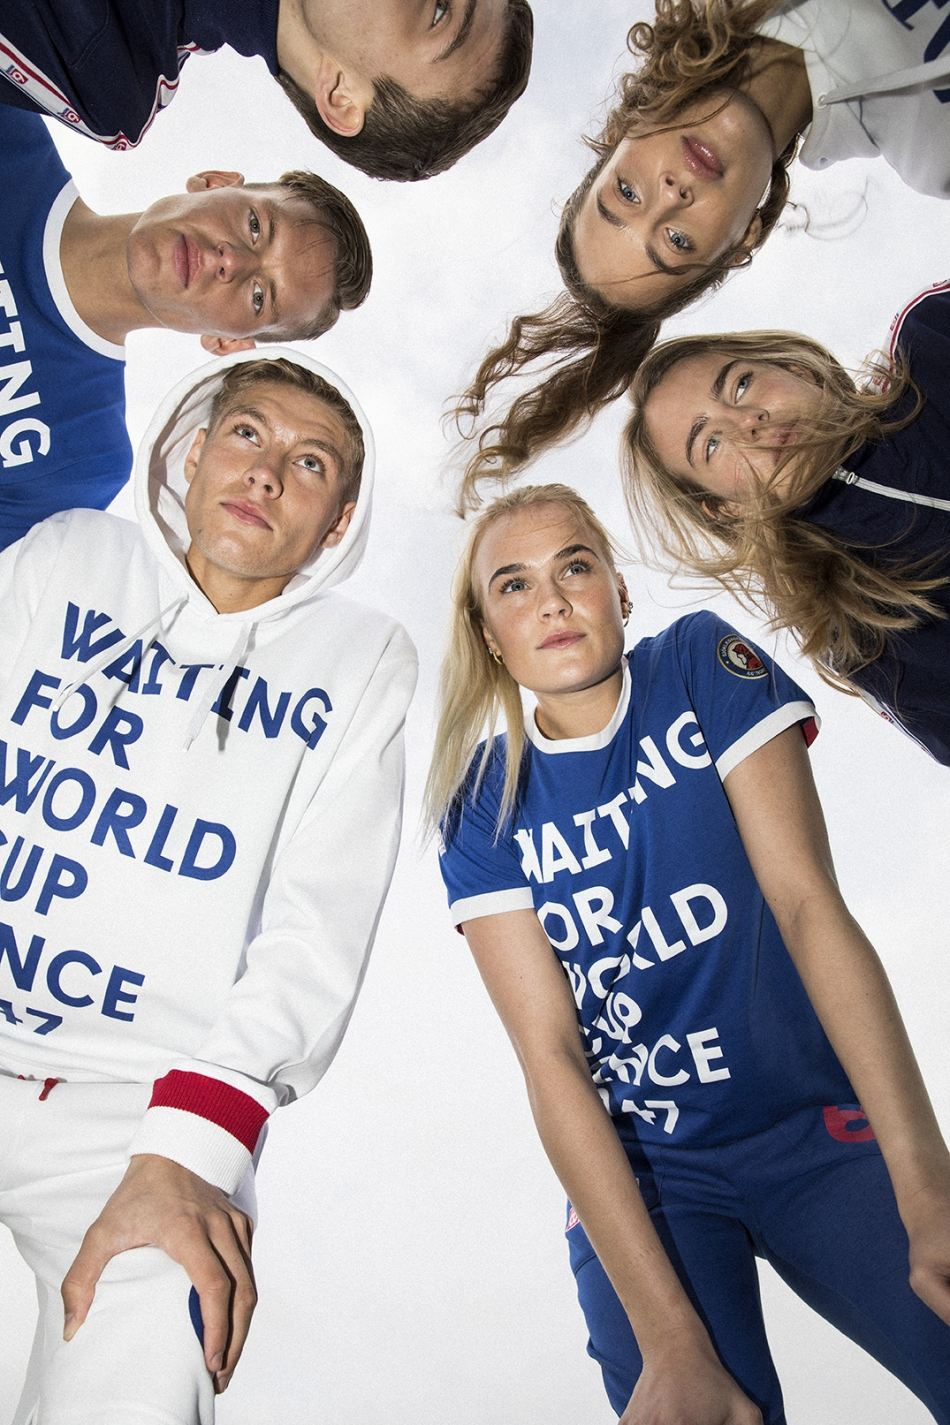 66north-world-cup-capsule-collection-4